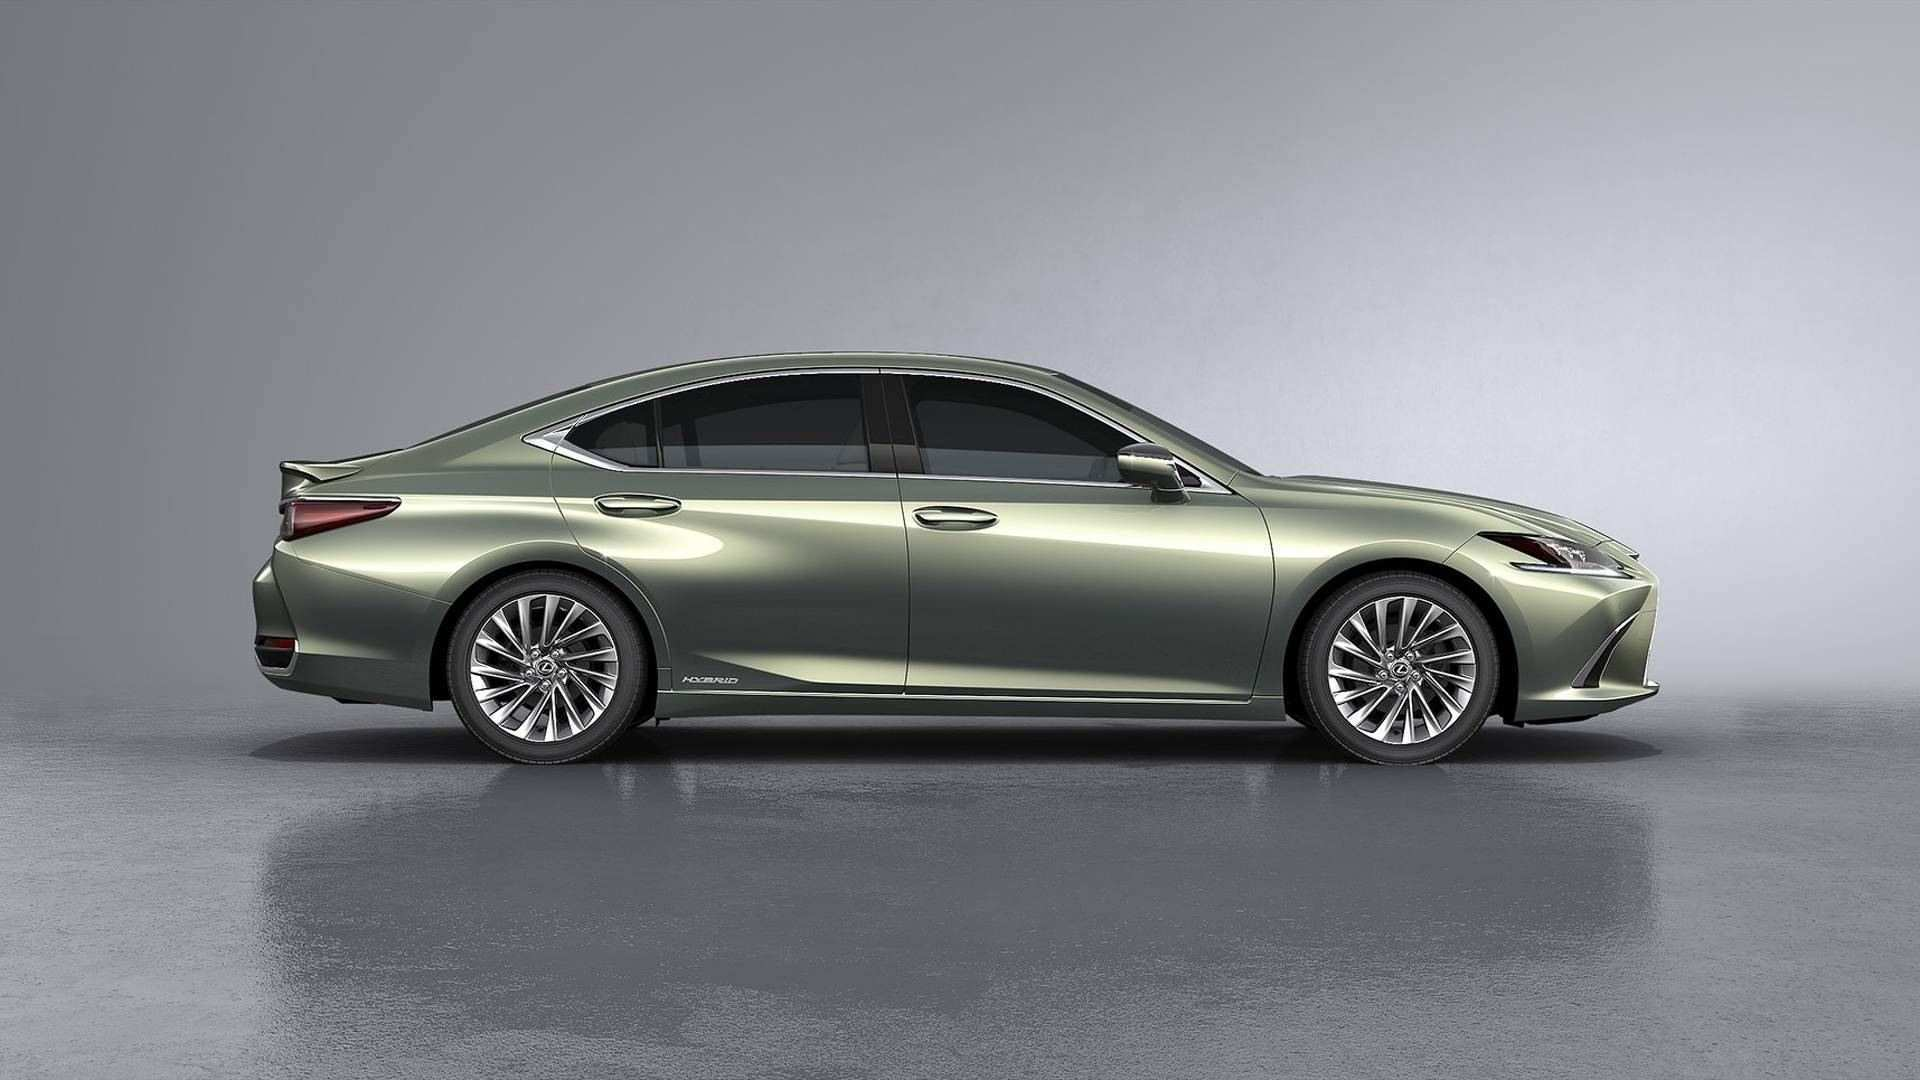 90 The Best Lexus 2019 Colors Price And Review